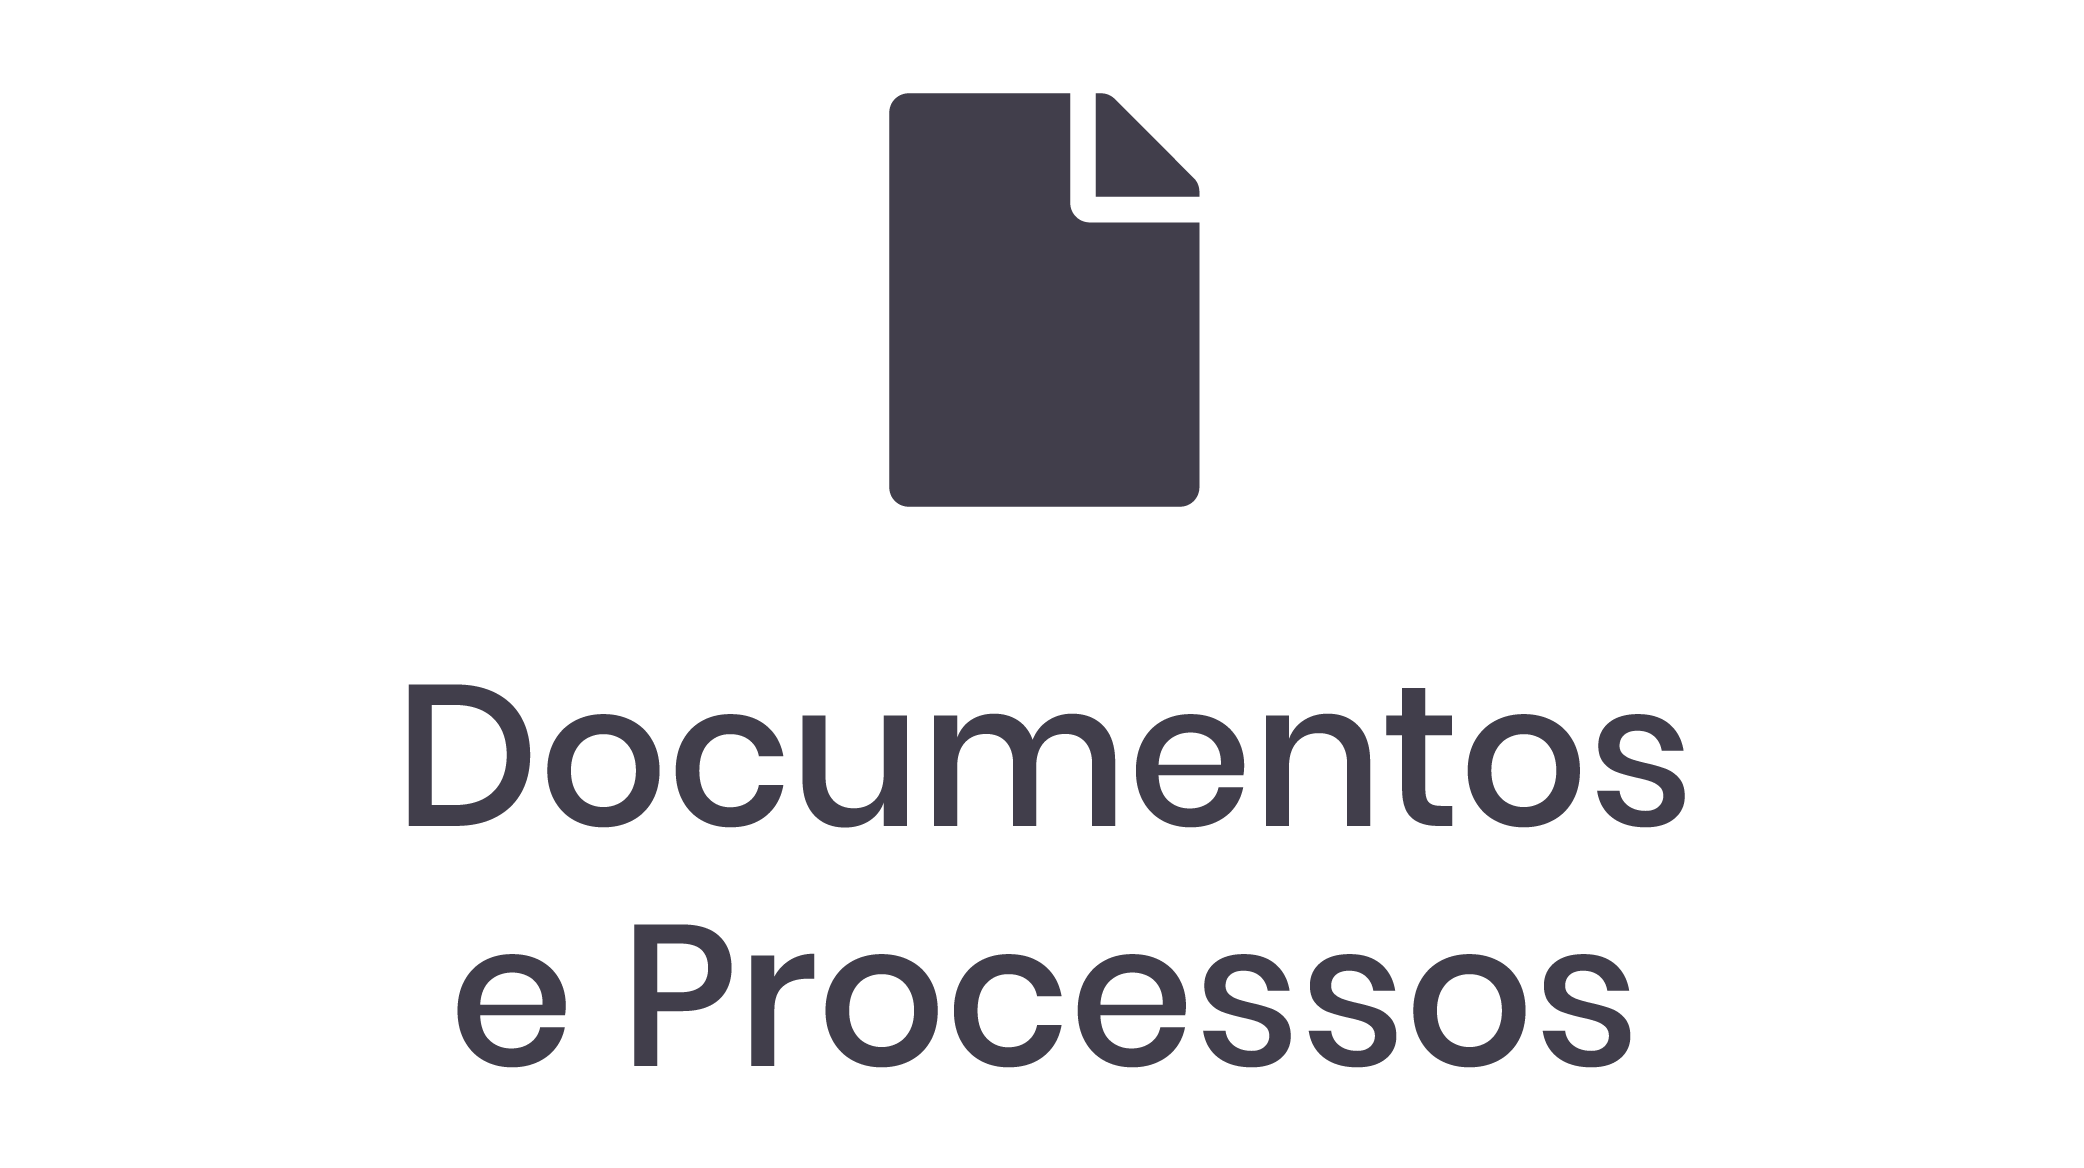 Documentos e Processos